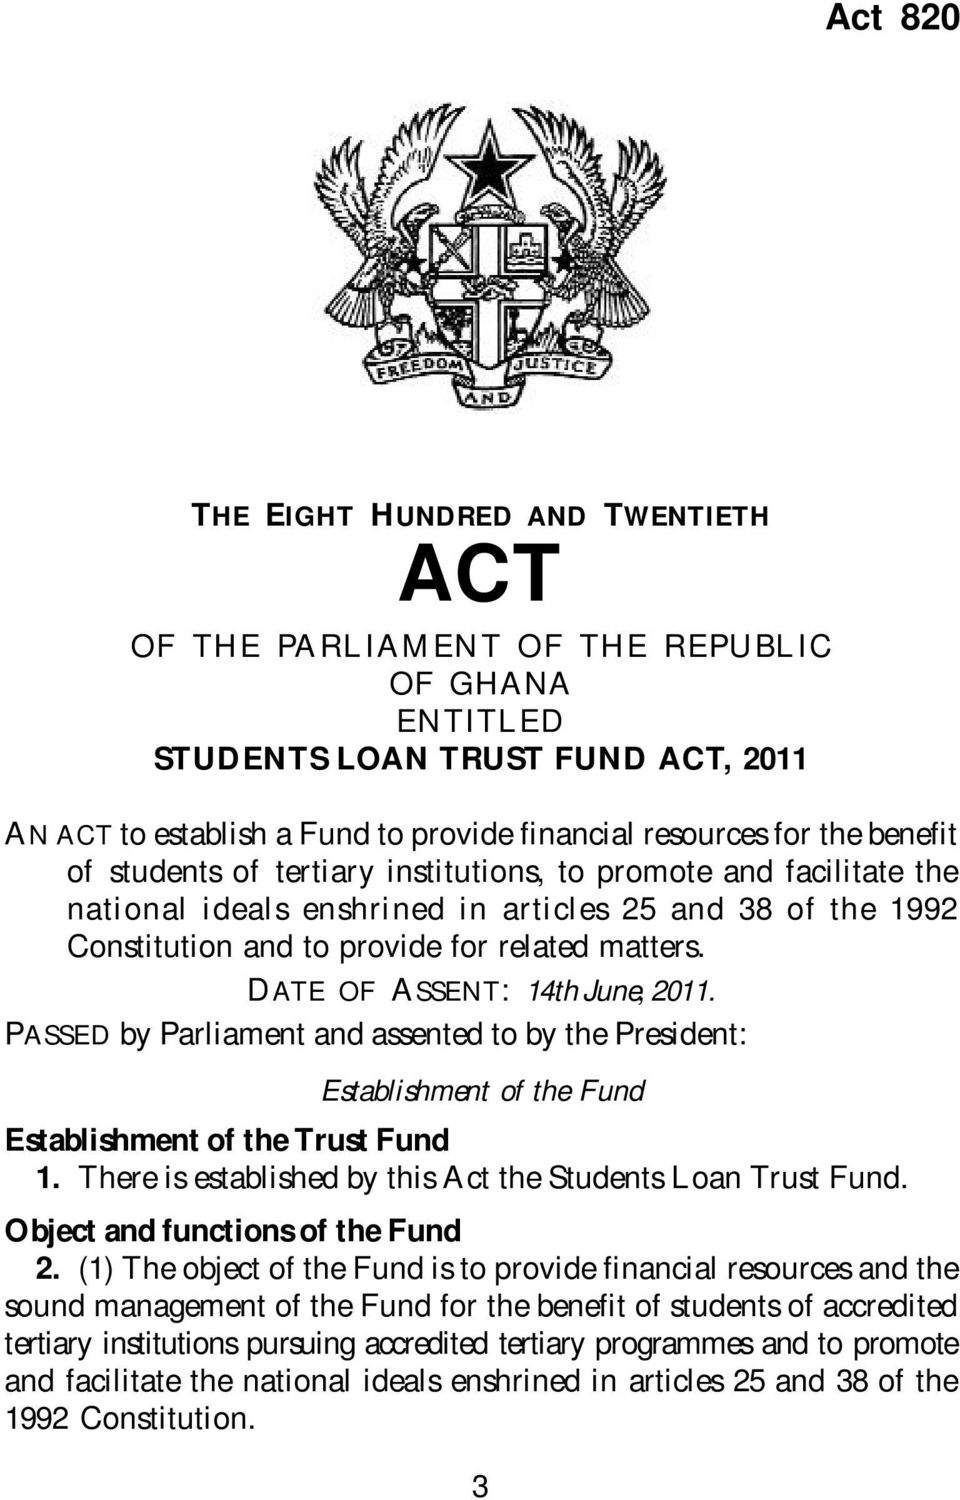 for related matters. DATE OF ASSENT: 14th June, 2011. PASSED by Parliament and assented to by the President: Establishment of the Fund Establishment of the Trust Fund 1.